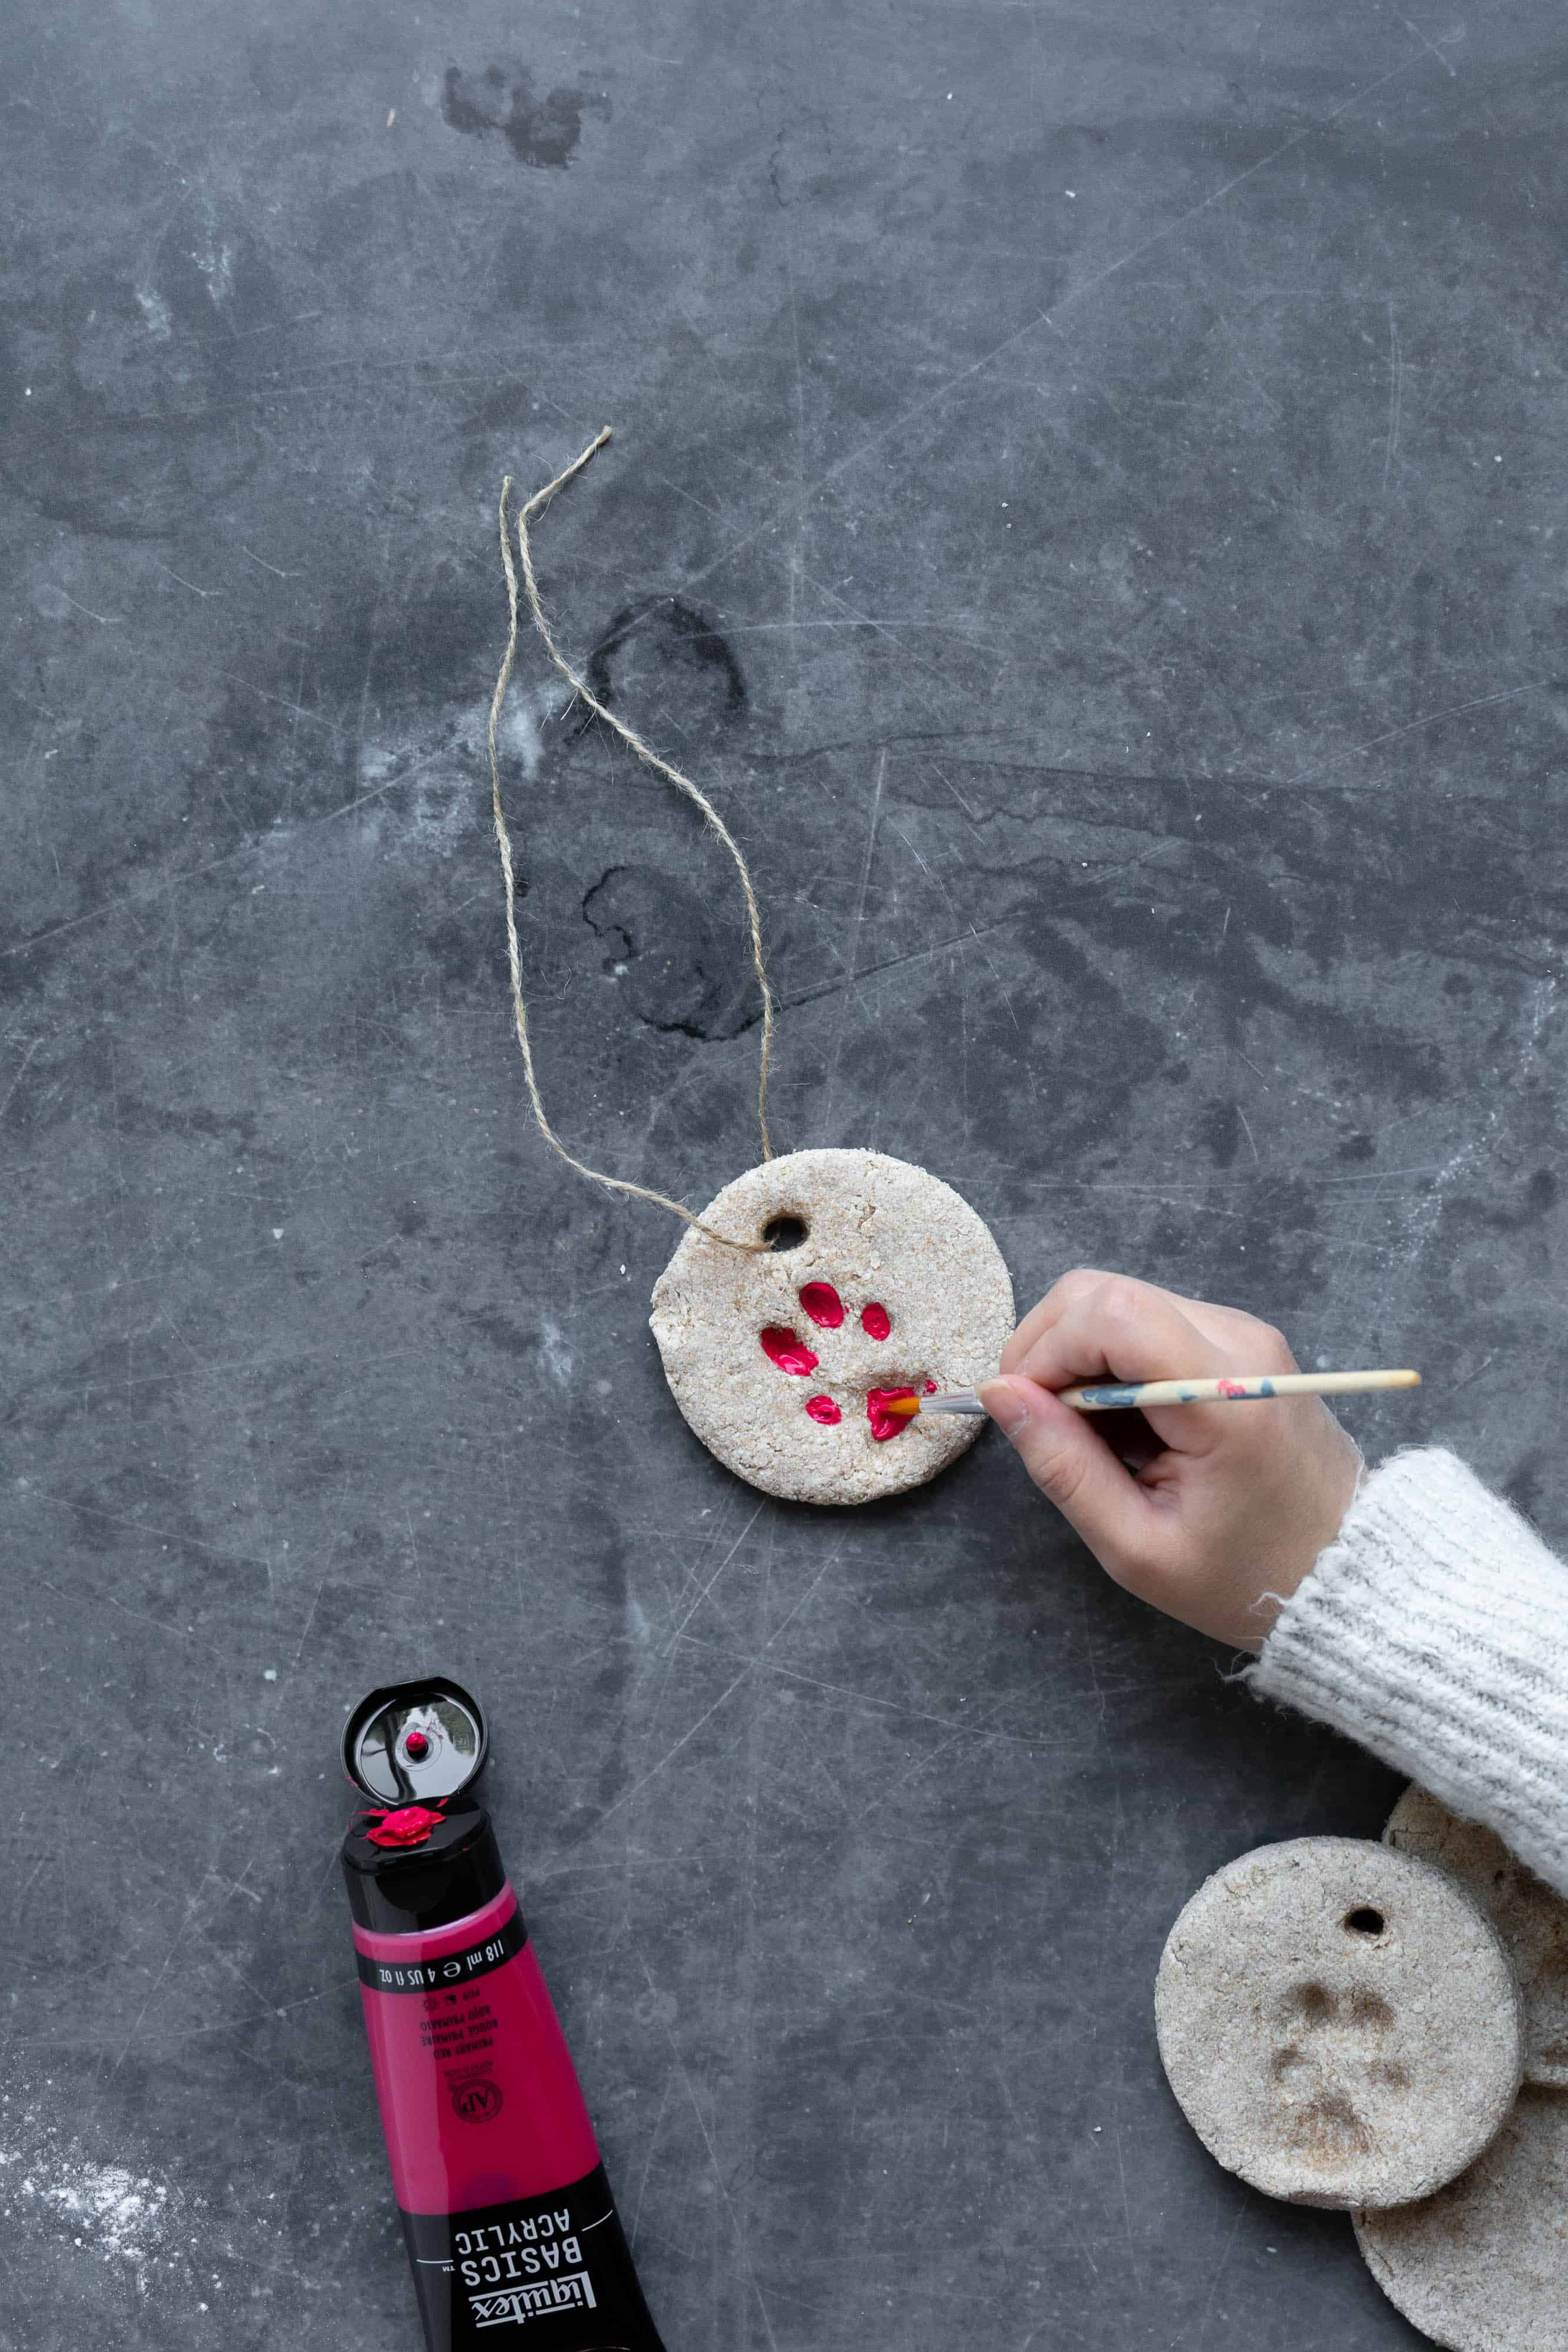 A hand painting a paw print on an ornament